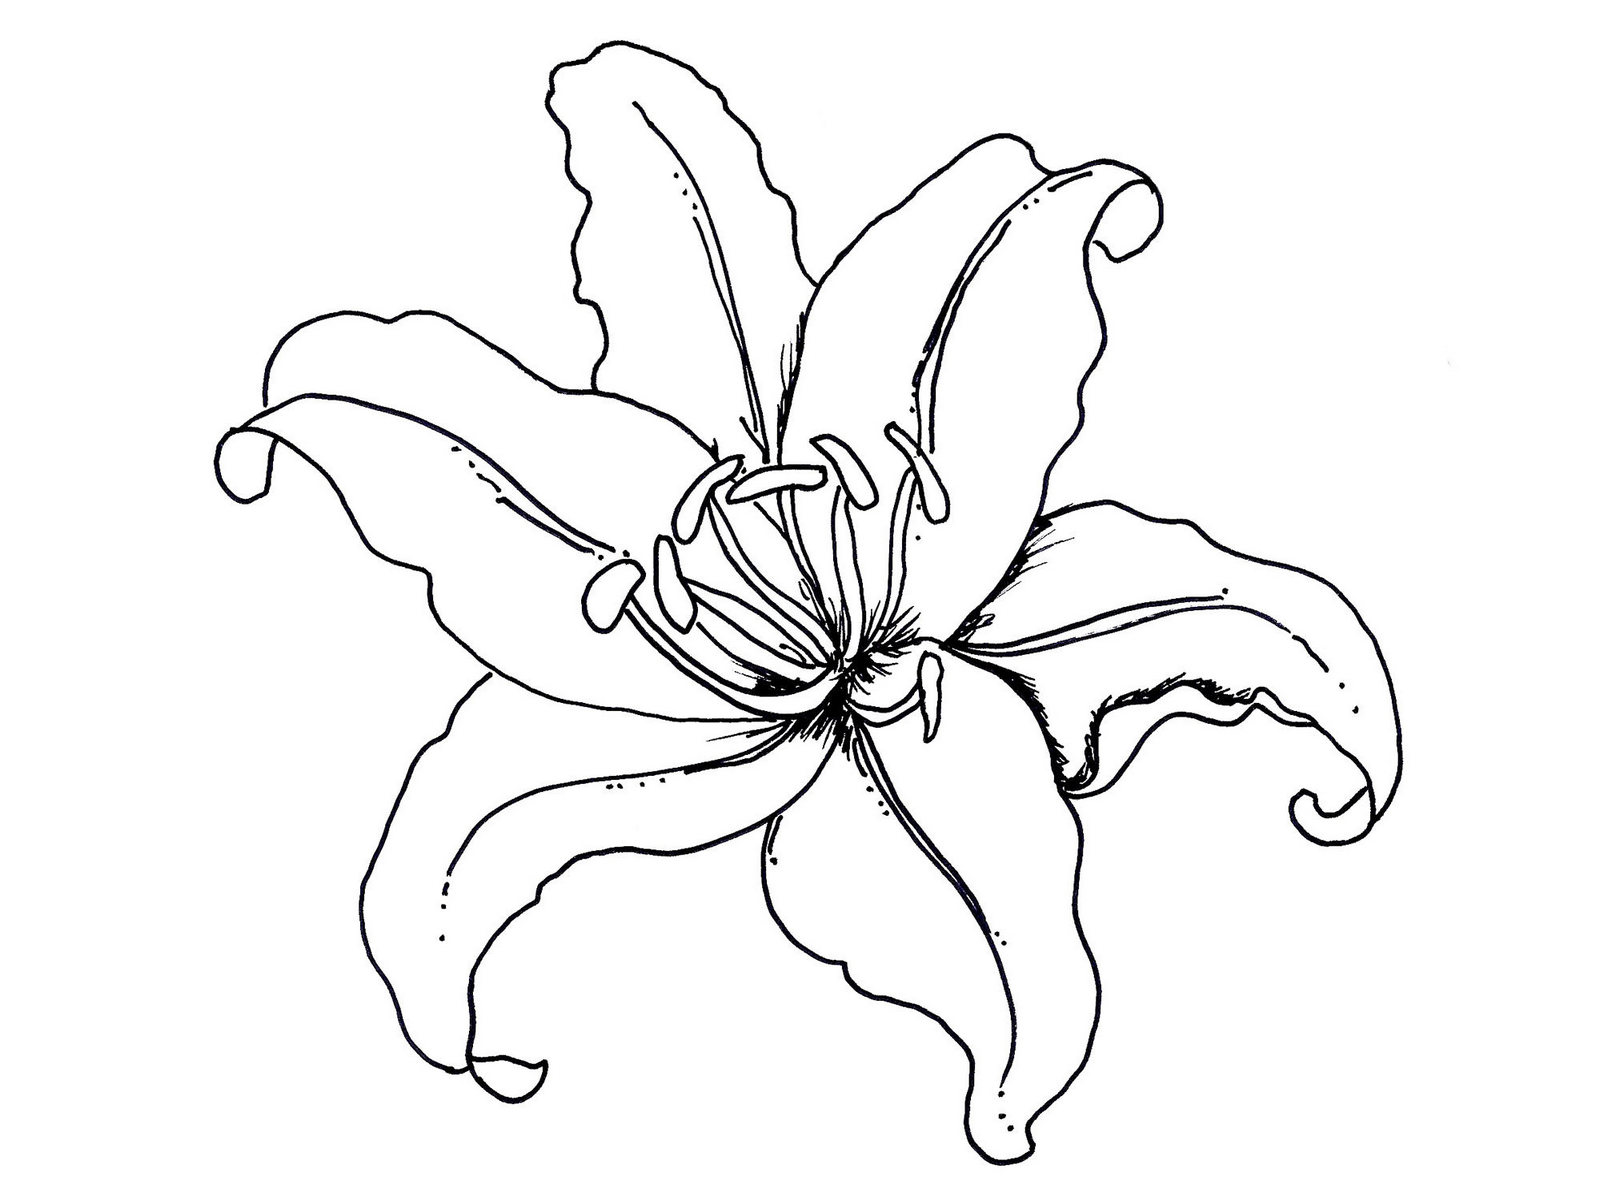 Lily flower coloring book